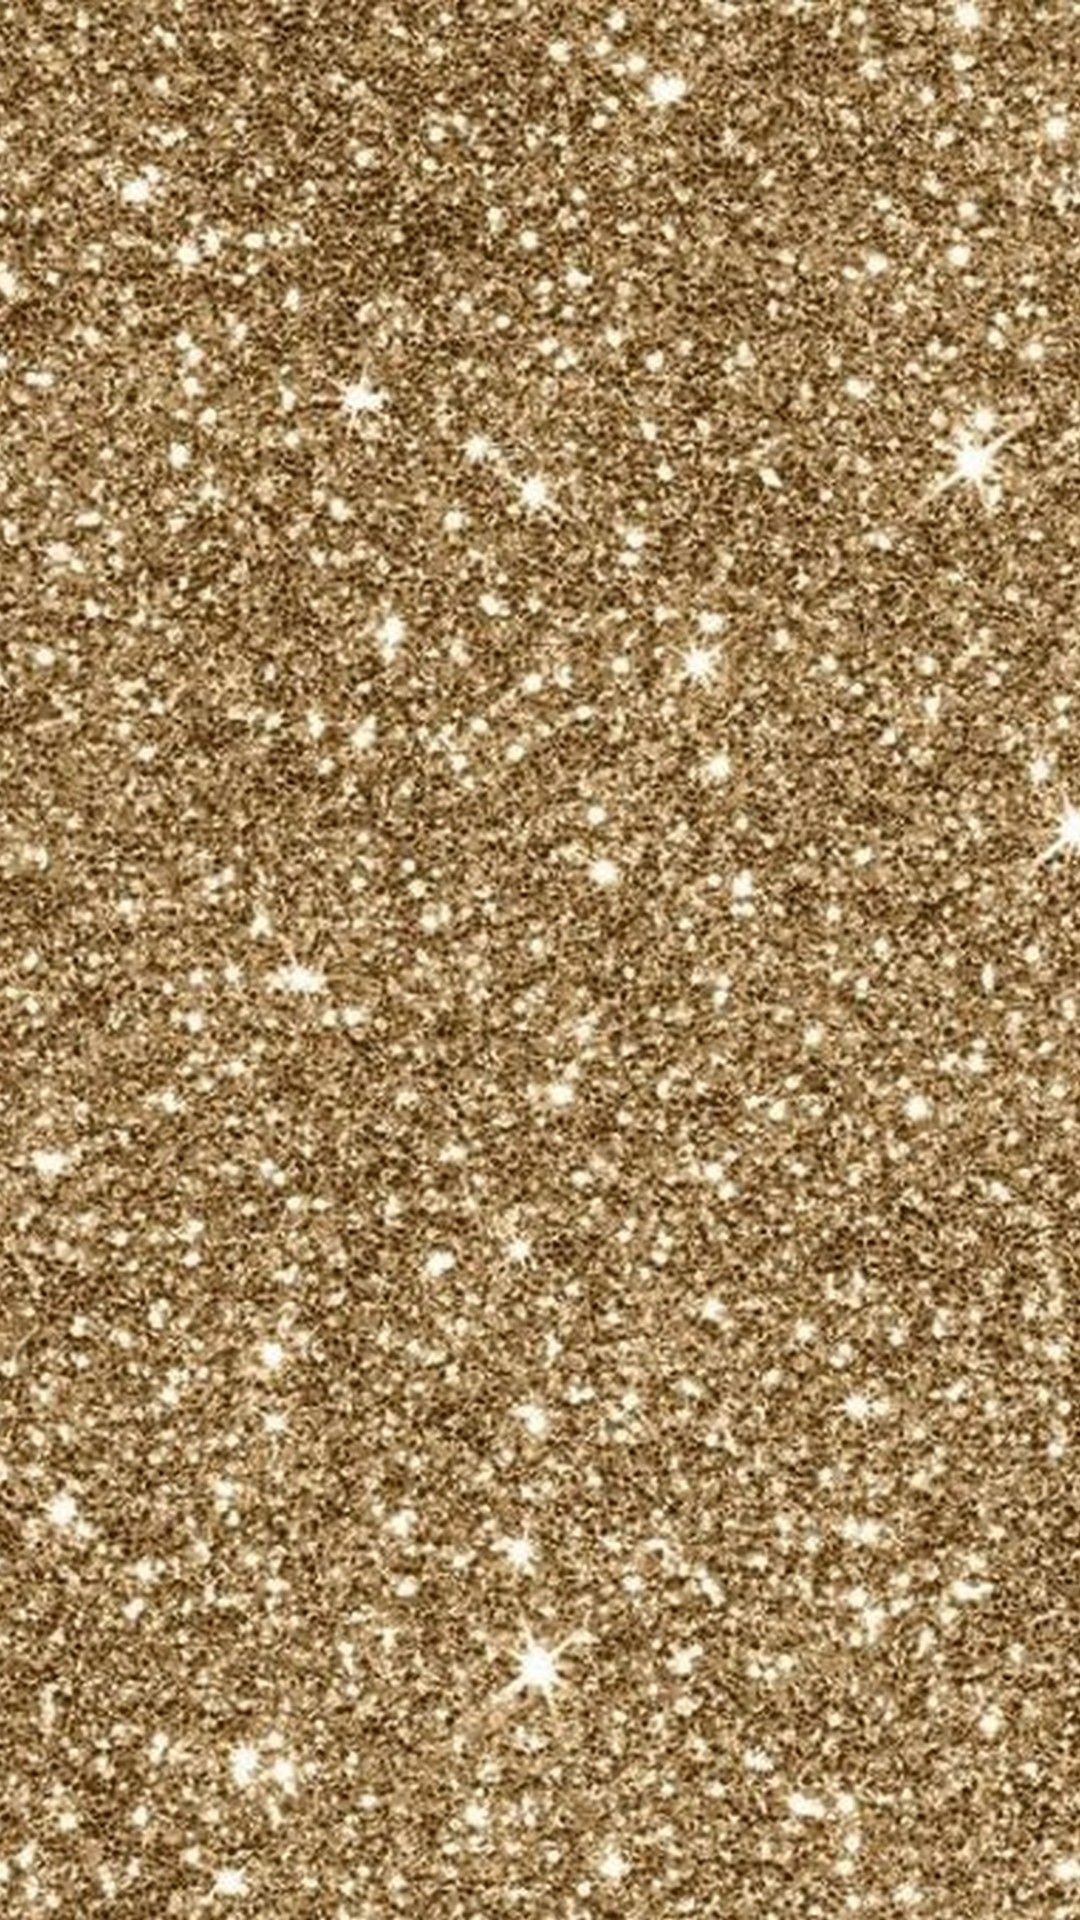 Get Good Black Wallpaper Iphone Glitter Sparkle Wallpapers for iPhone XS 2020